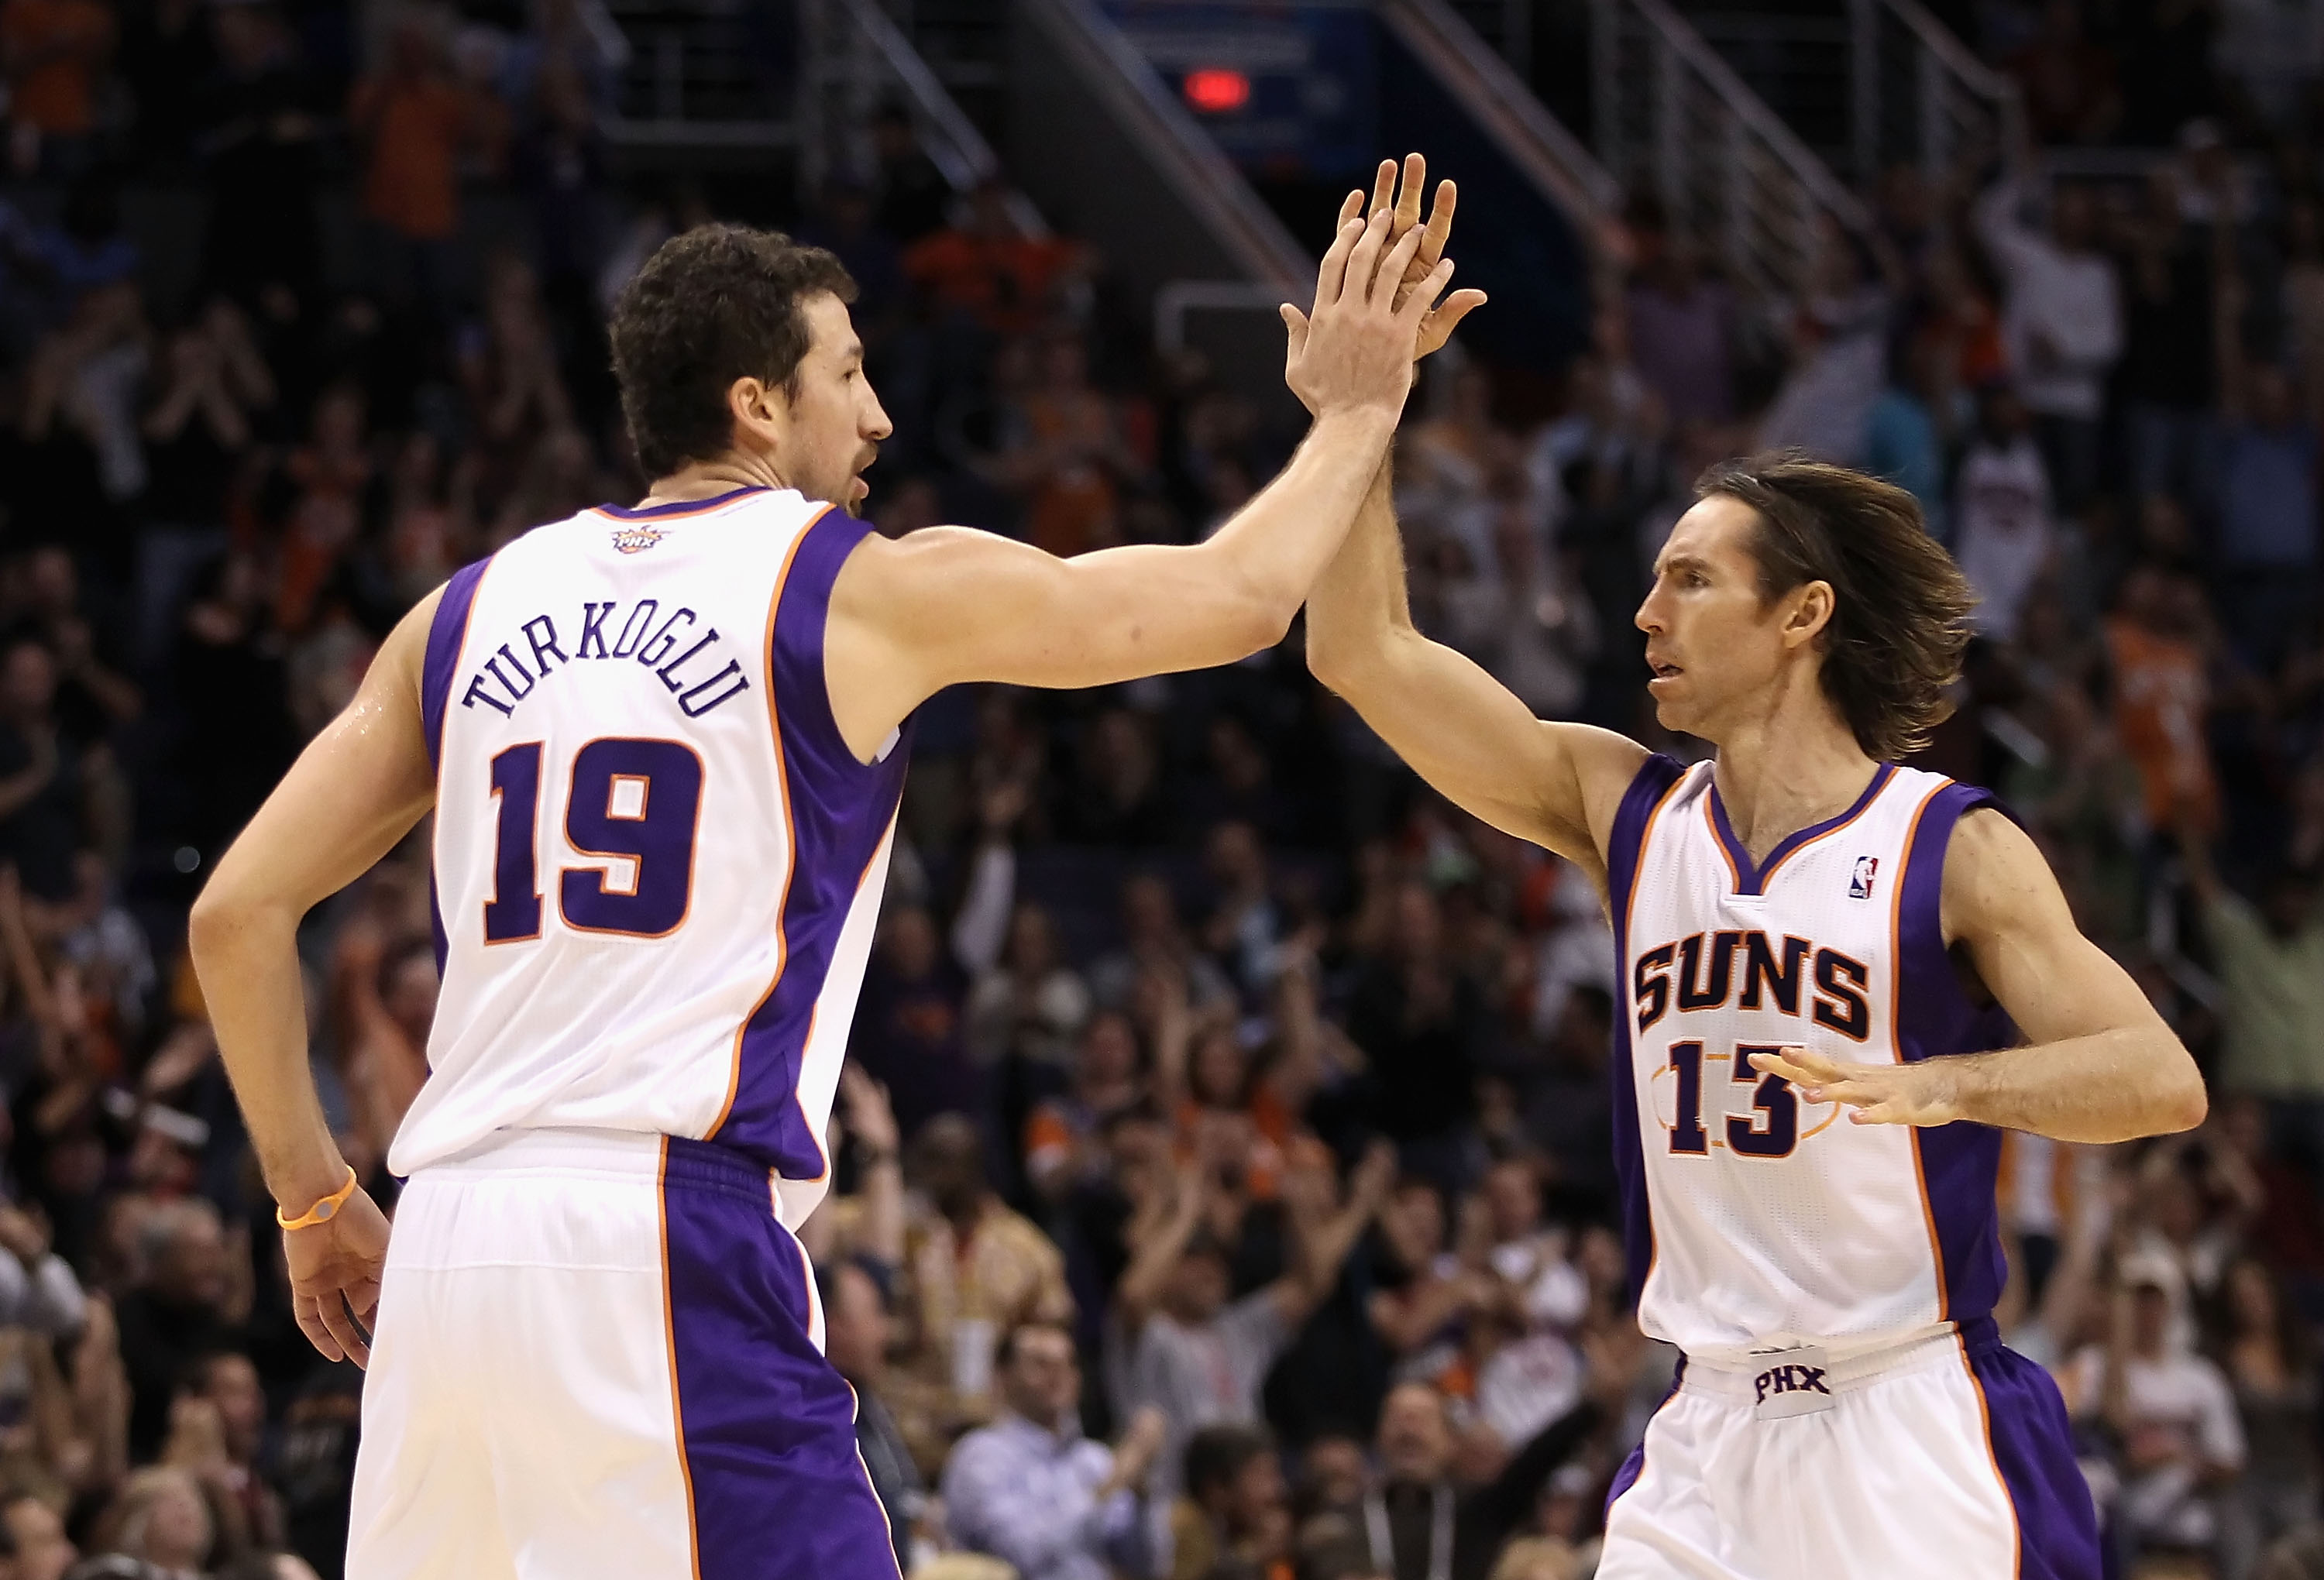 PHOENIX - NOVEMBER 15: Hedo Turkoglu #19 of the Phoenix Suns high-fives teammate Steve Nash #13 after Turkoglu hit a three point shot against the Denver Nuggets during the NBA game at US Airways Center on November 15, 2010 in Phoenix, Arizona. (Photo by Christian Petersen/Getty Images)